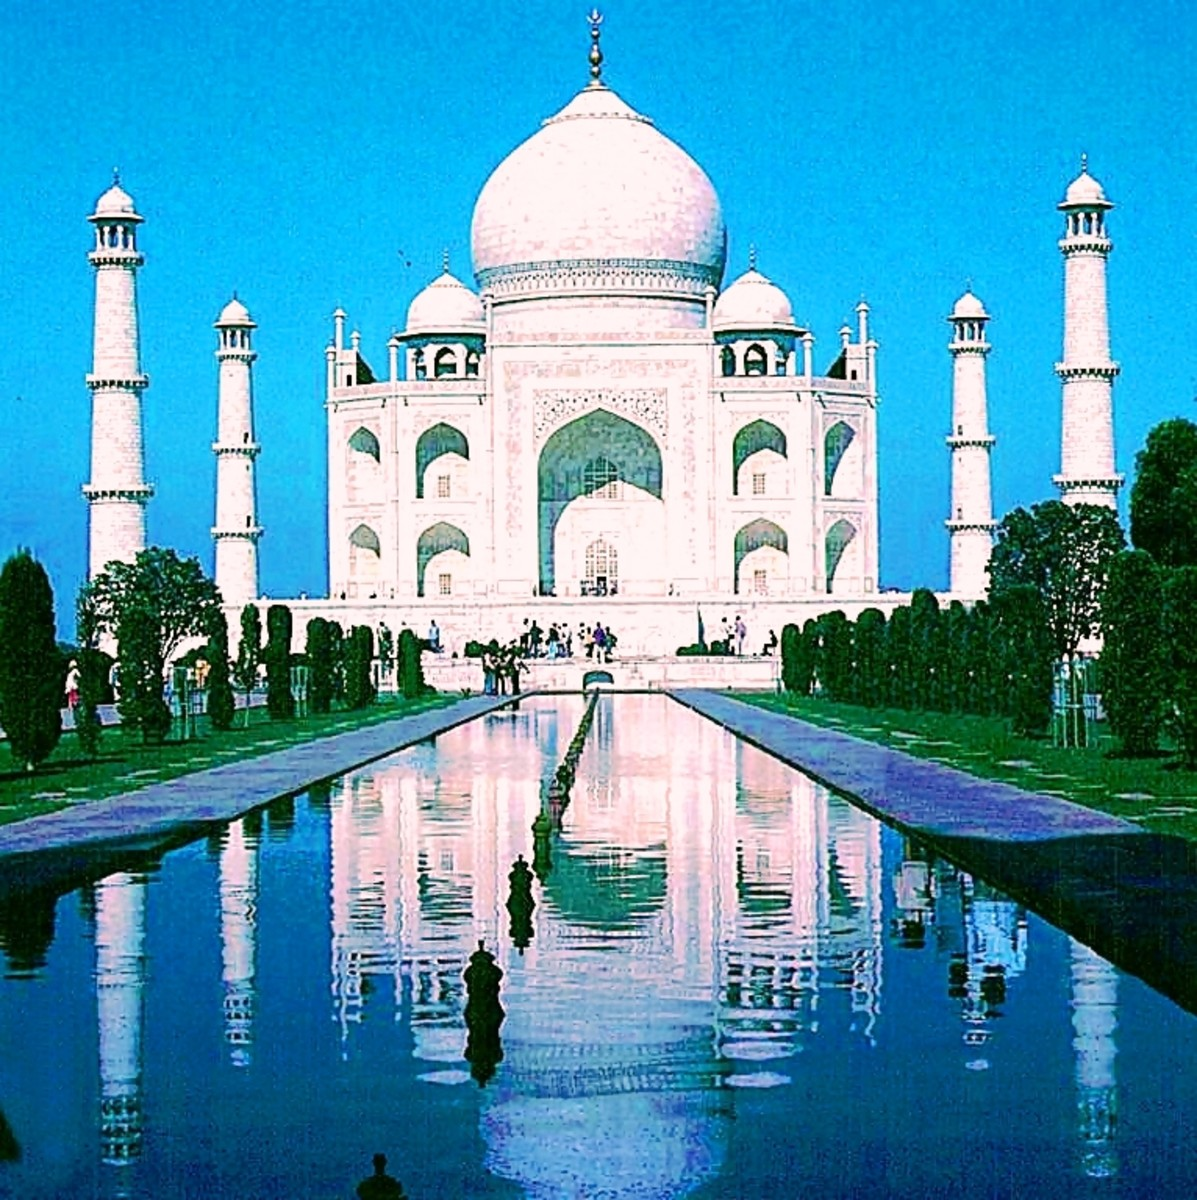 taj Mahal: The most beautiful monument on this planet